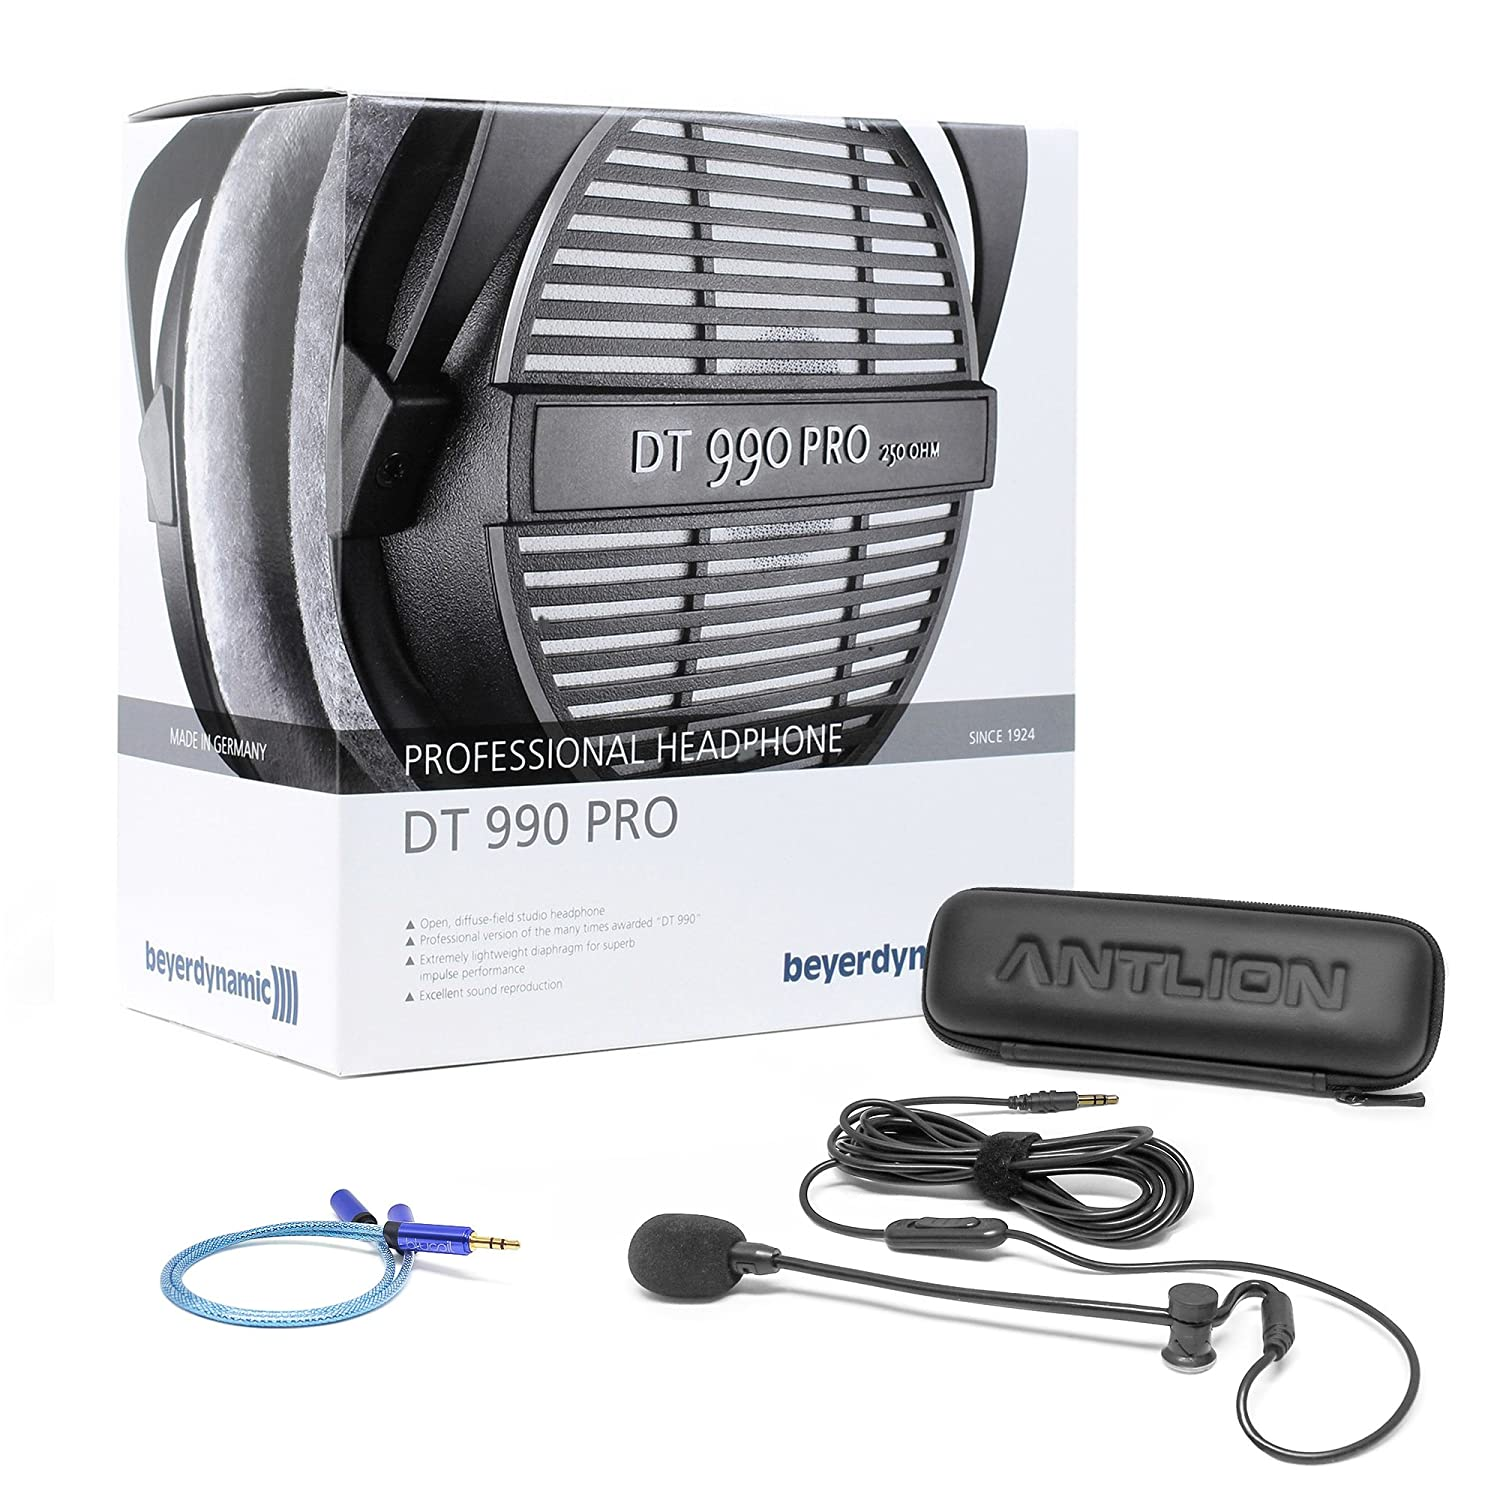 Beyerdynamic Dt 990 Pro 250 Ohm Open Studio Headphone Electret Mic Wiring Moreover Element Microphone Boom Bundle Includes Antlion Audio Modmic Attachable Noise Cancelling Mute